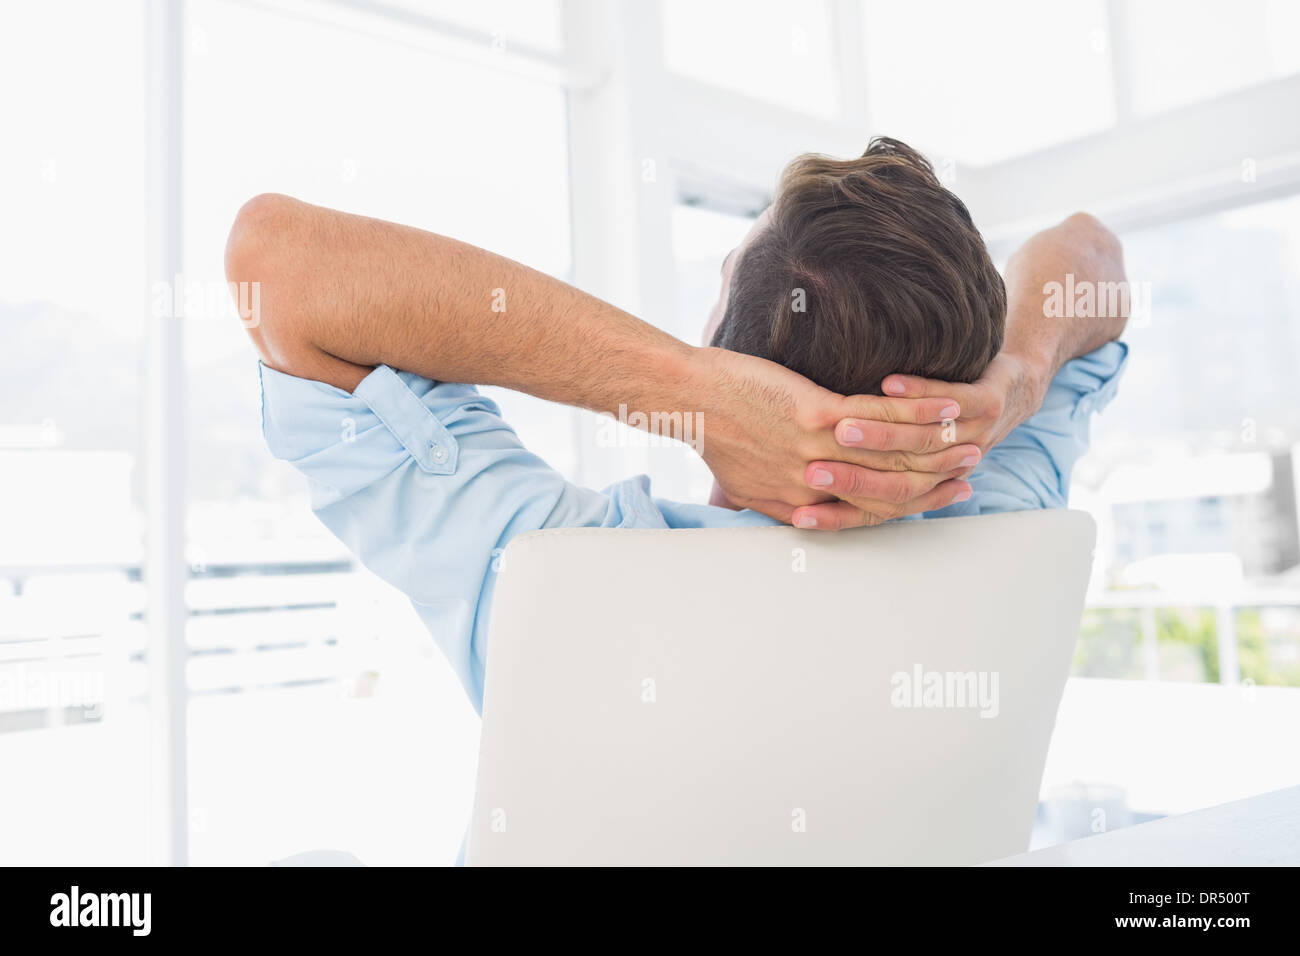 Rear view of a casual man resting with hands behind head in office - Stock Image